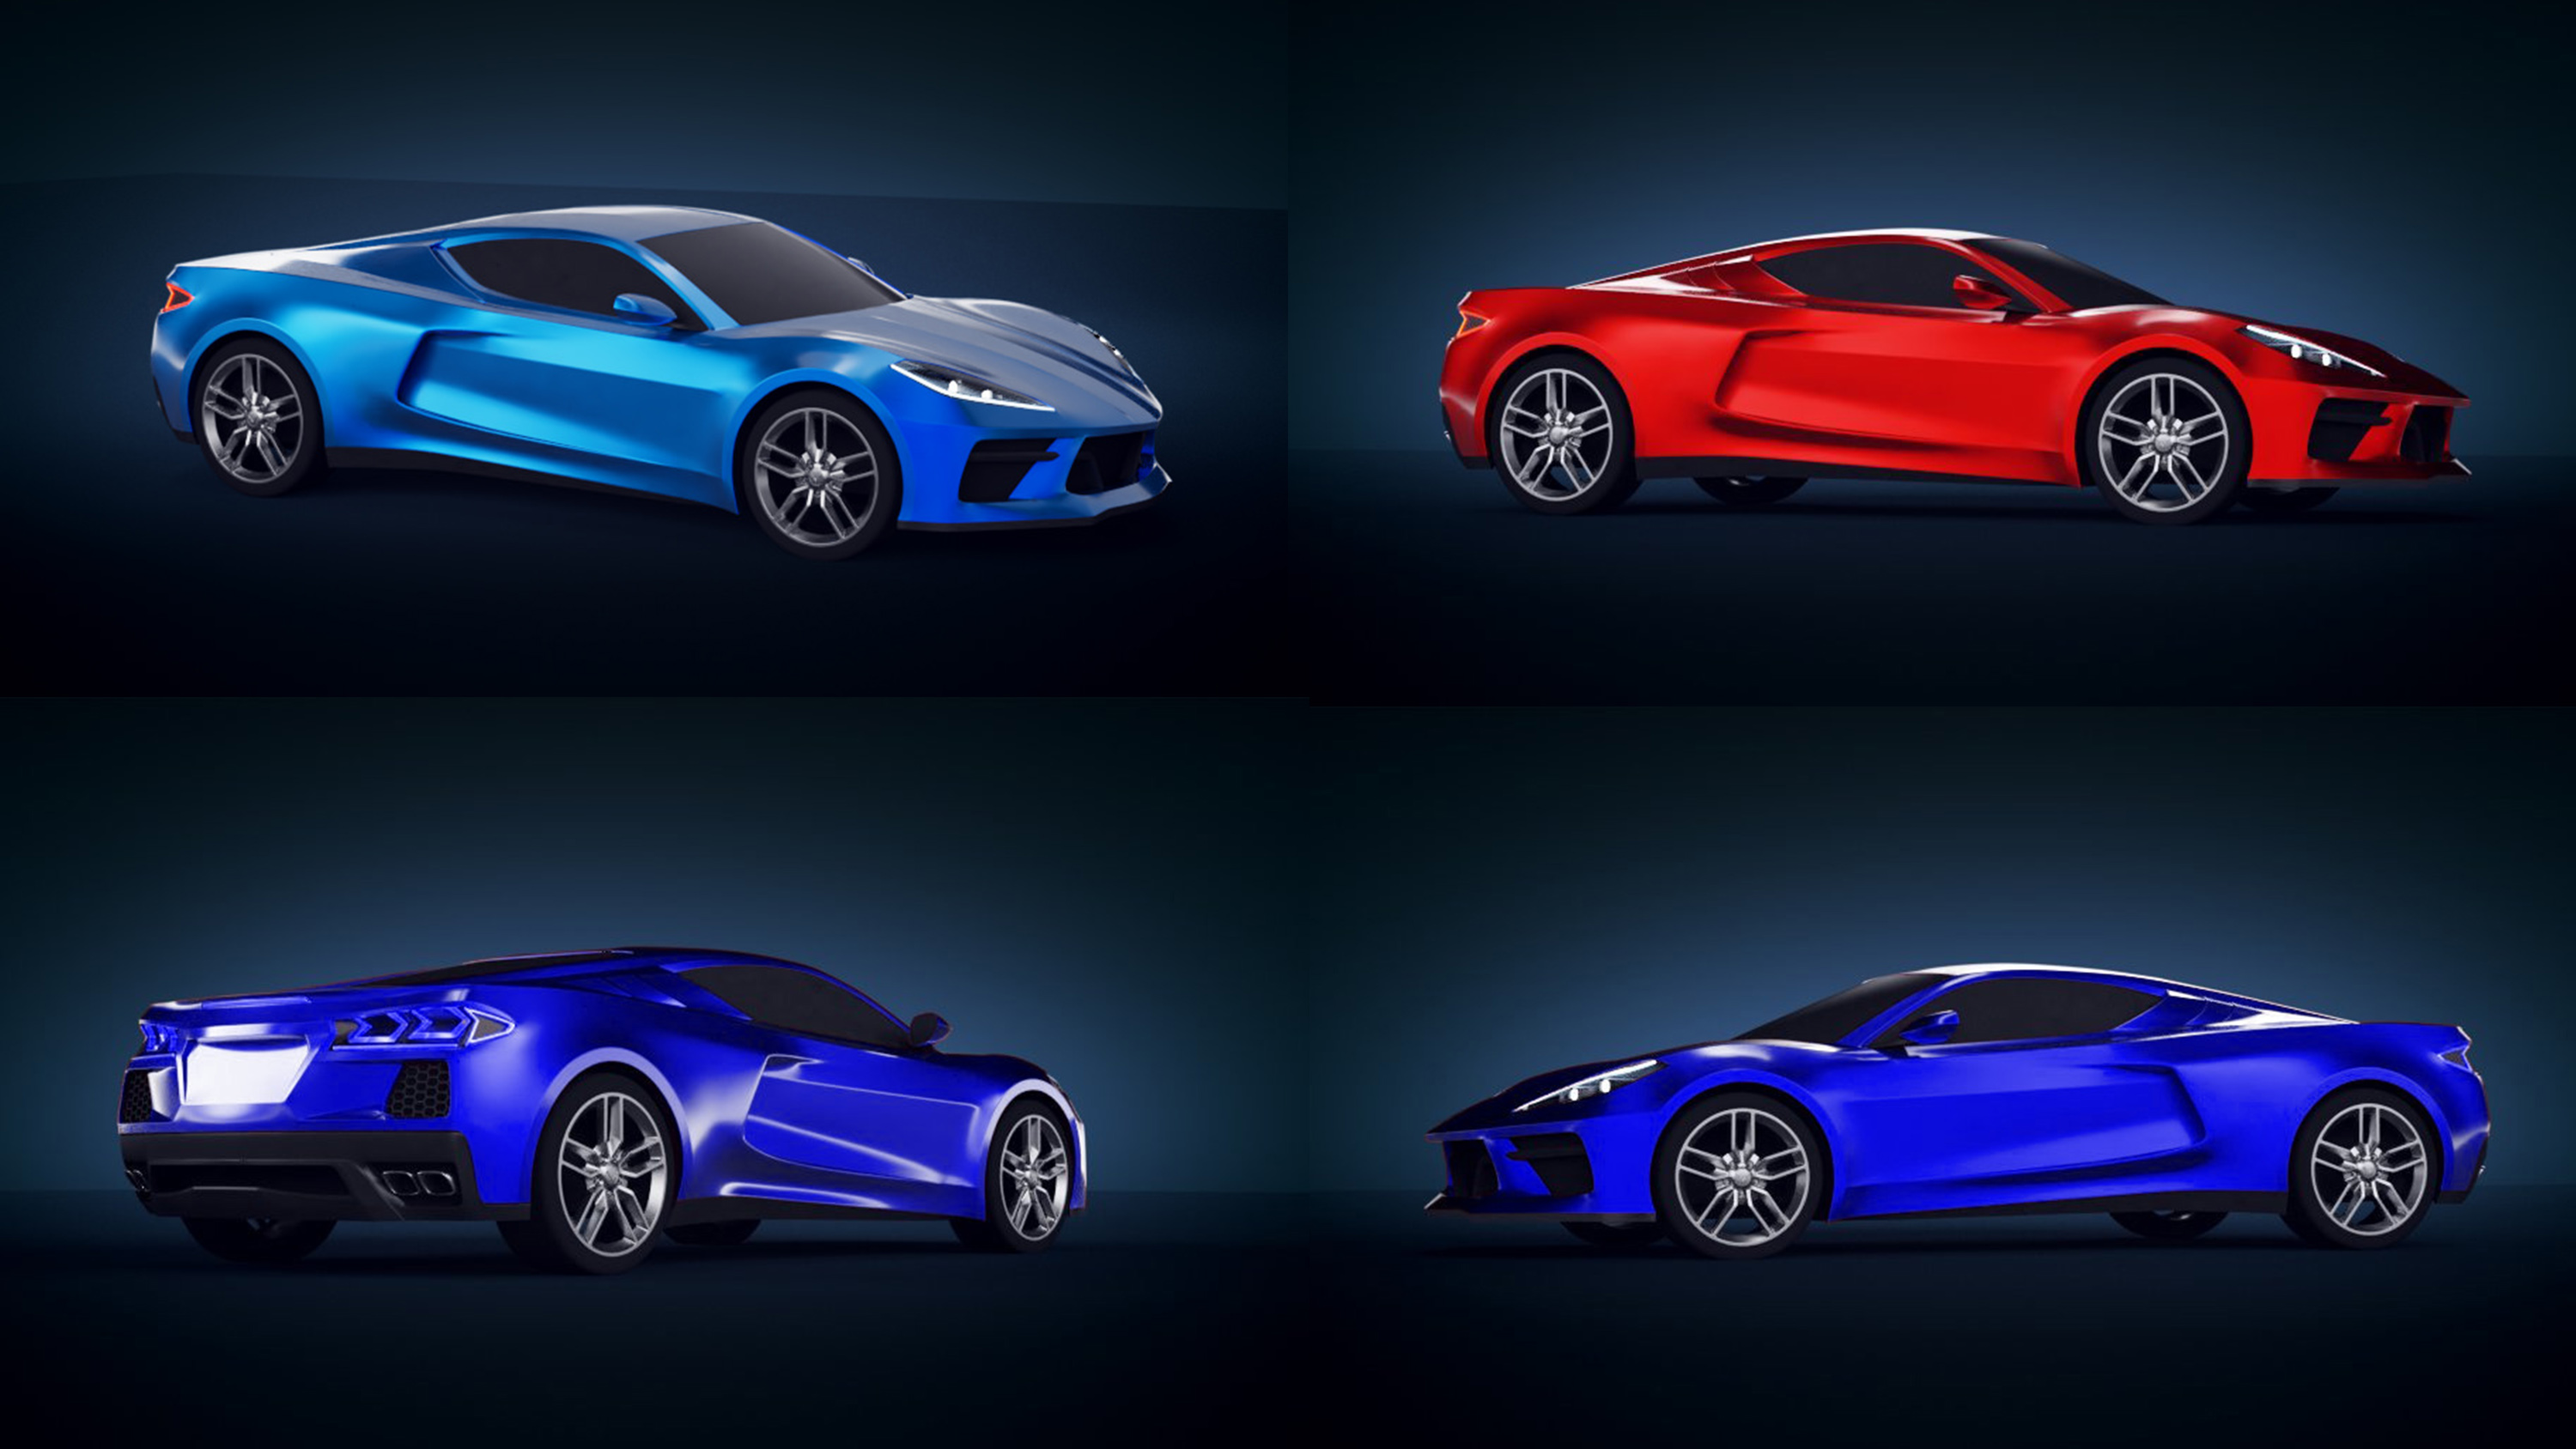 Latest Renderings Of The Mid Engined C8 Chevy Corvette